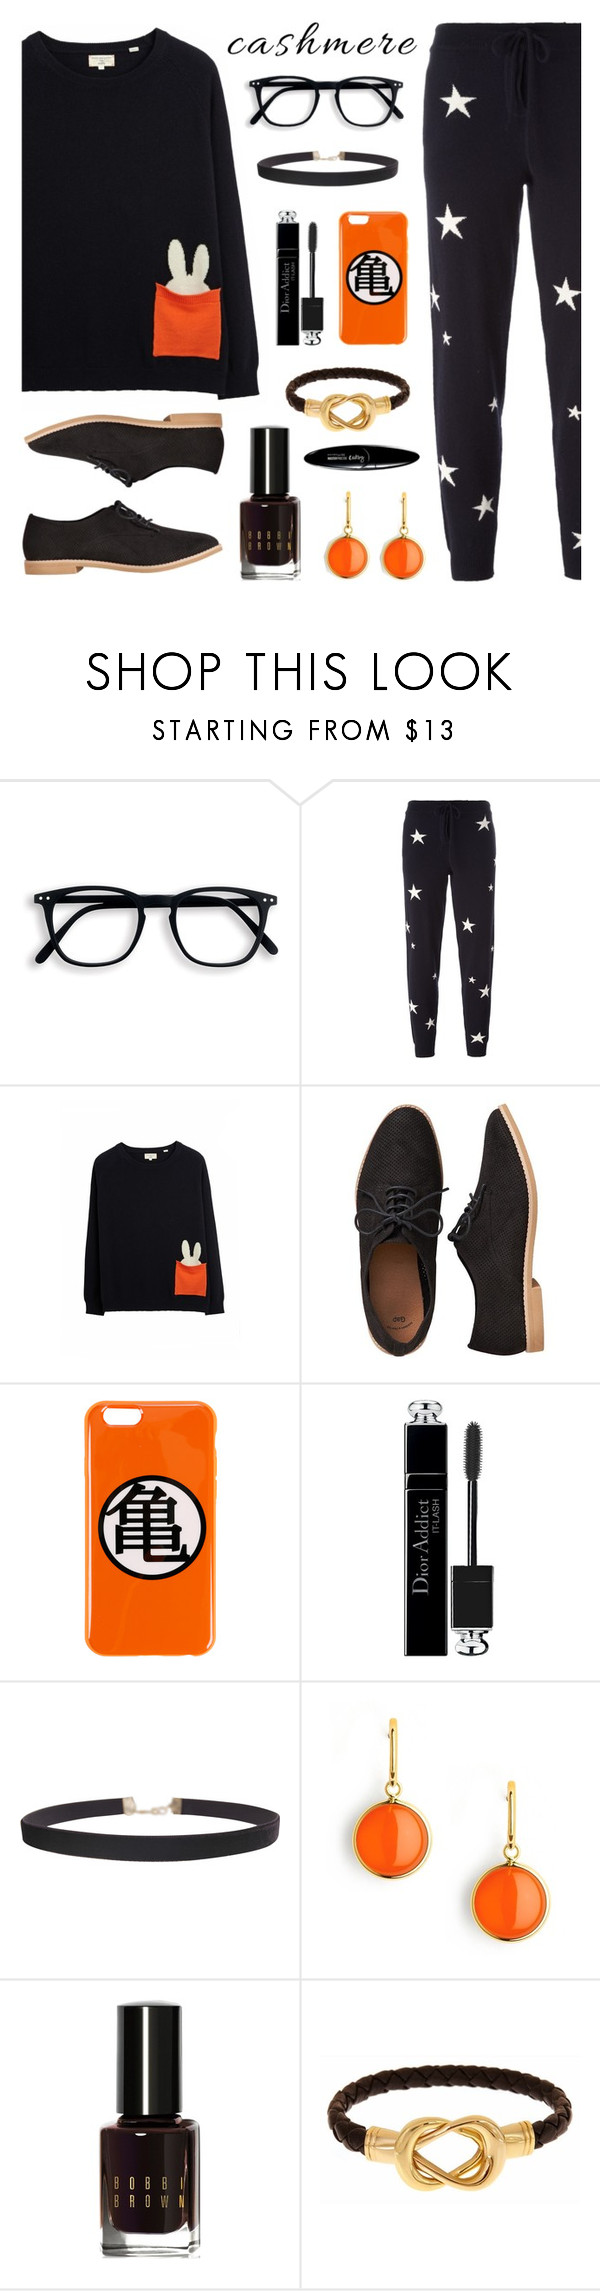 """""""Cozy Cashmere Sweater"""" by lgb321 ❤ liked on Polyvore featuring Chinti and Parker, Gap, Christian Dior, Humble Chic, Syna, Bobbi Brown Cosmetics, Fornash, Maybelline and cashmere"""